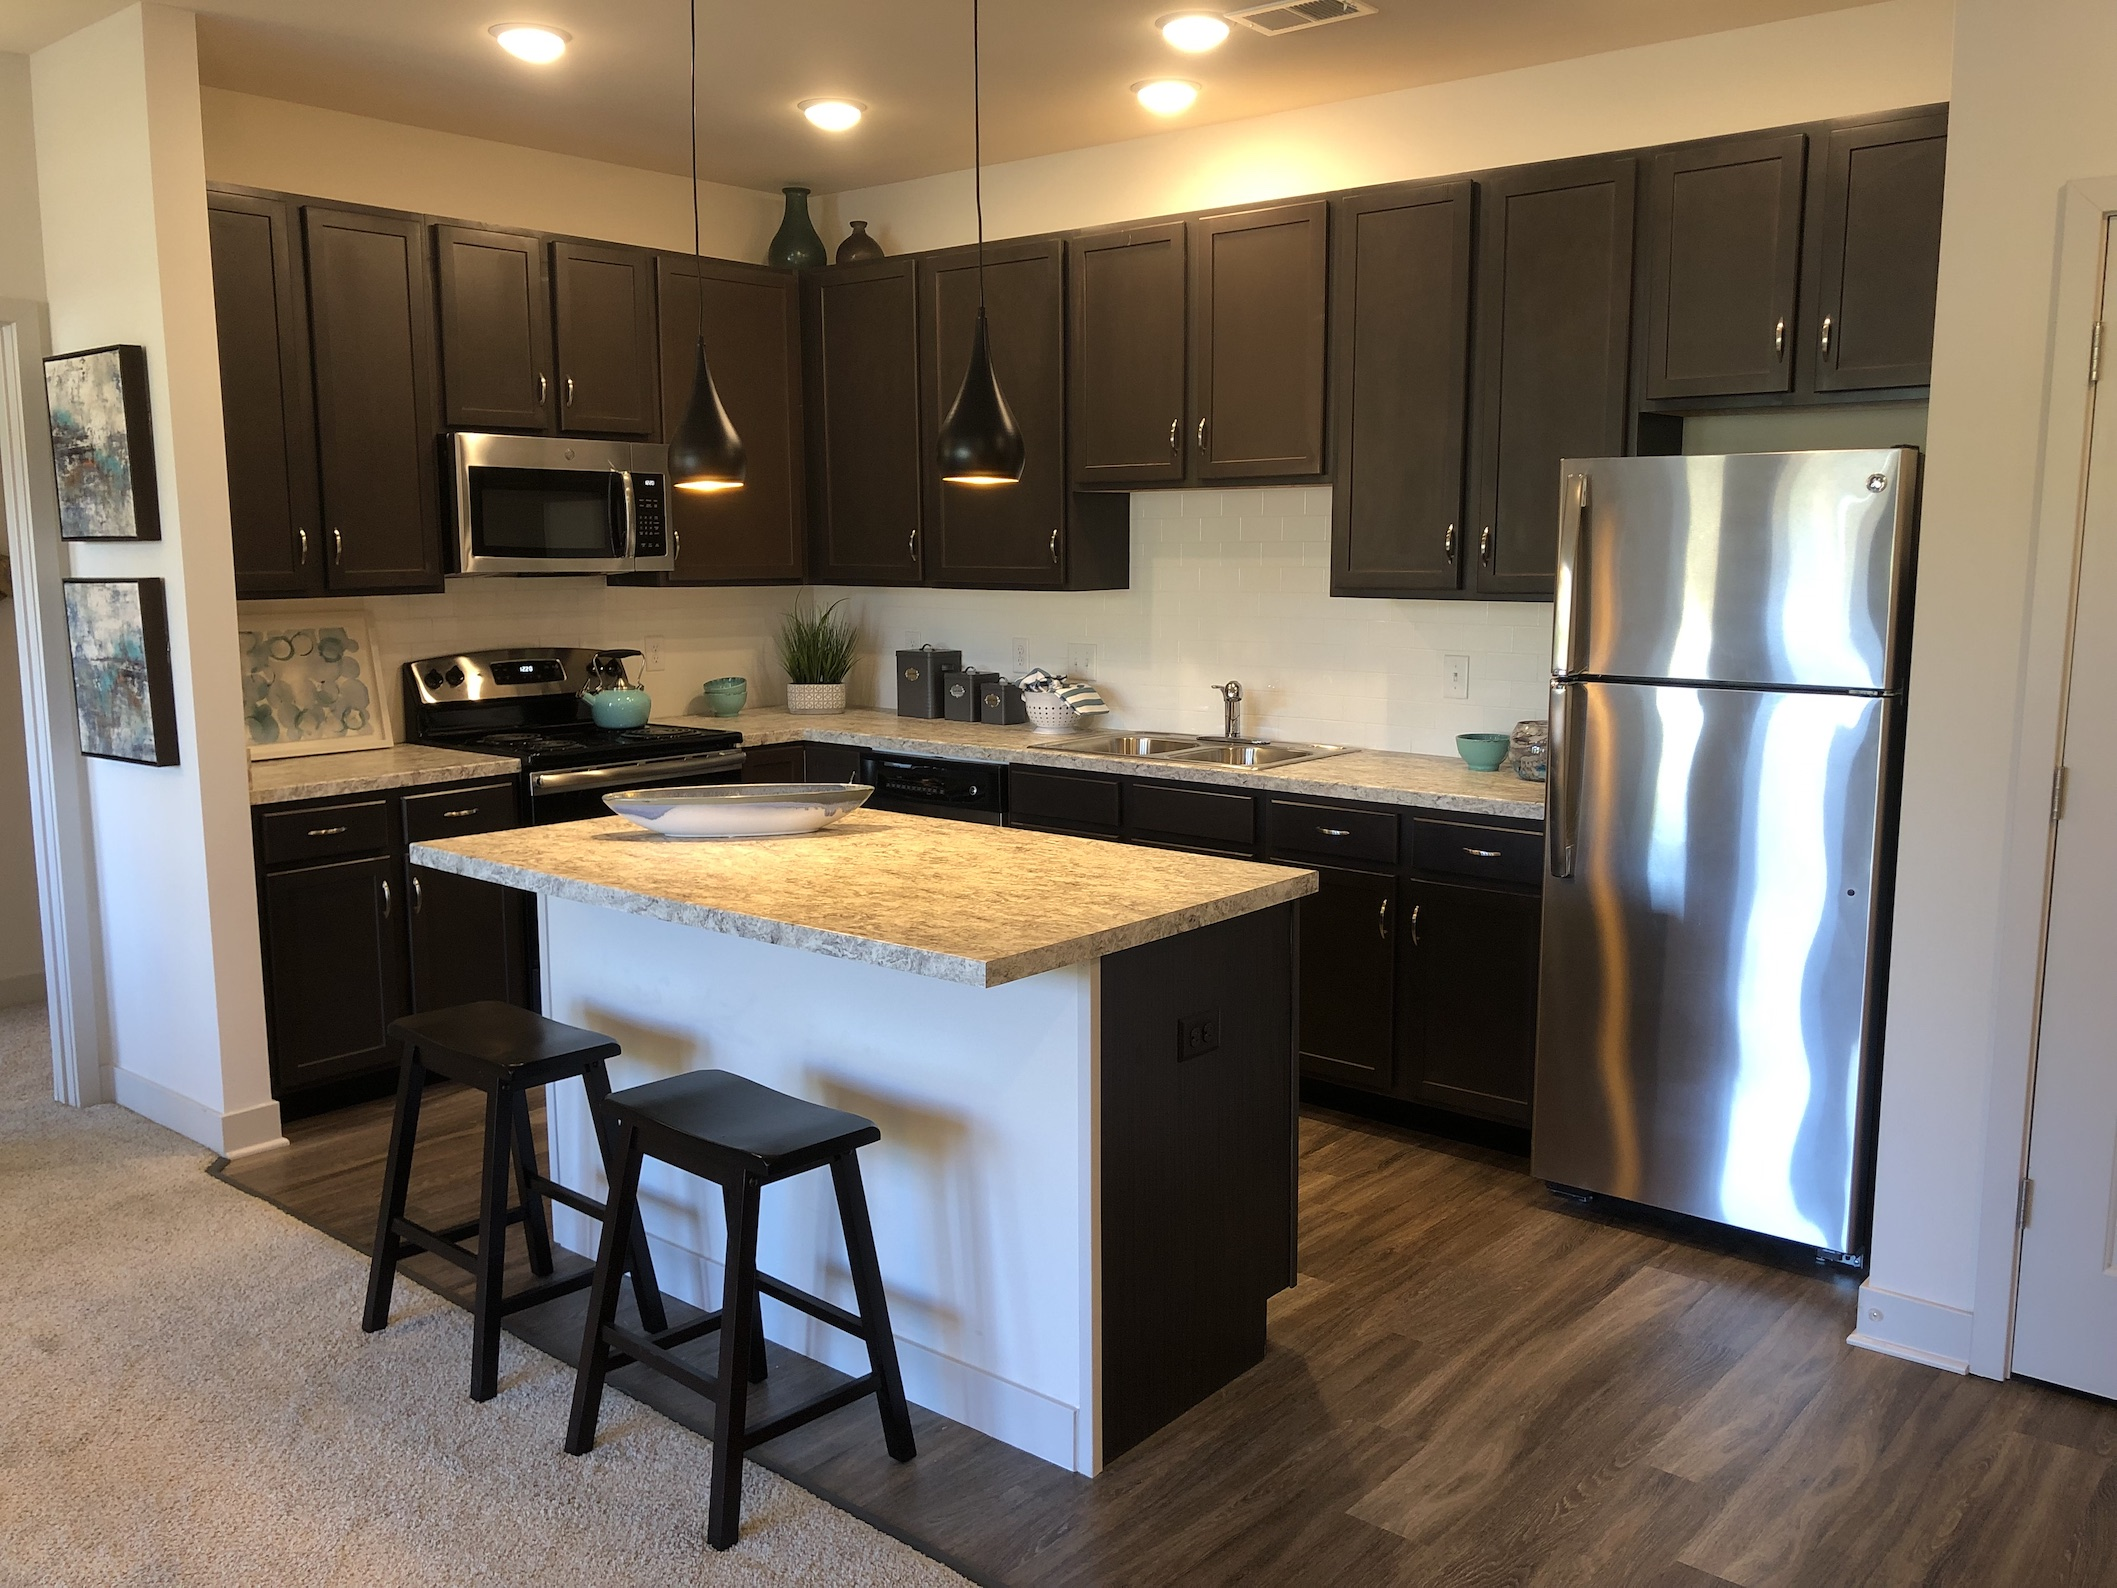 Stainless Steel Appliances at River Ridge Apartments in Loveland, Ohio